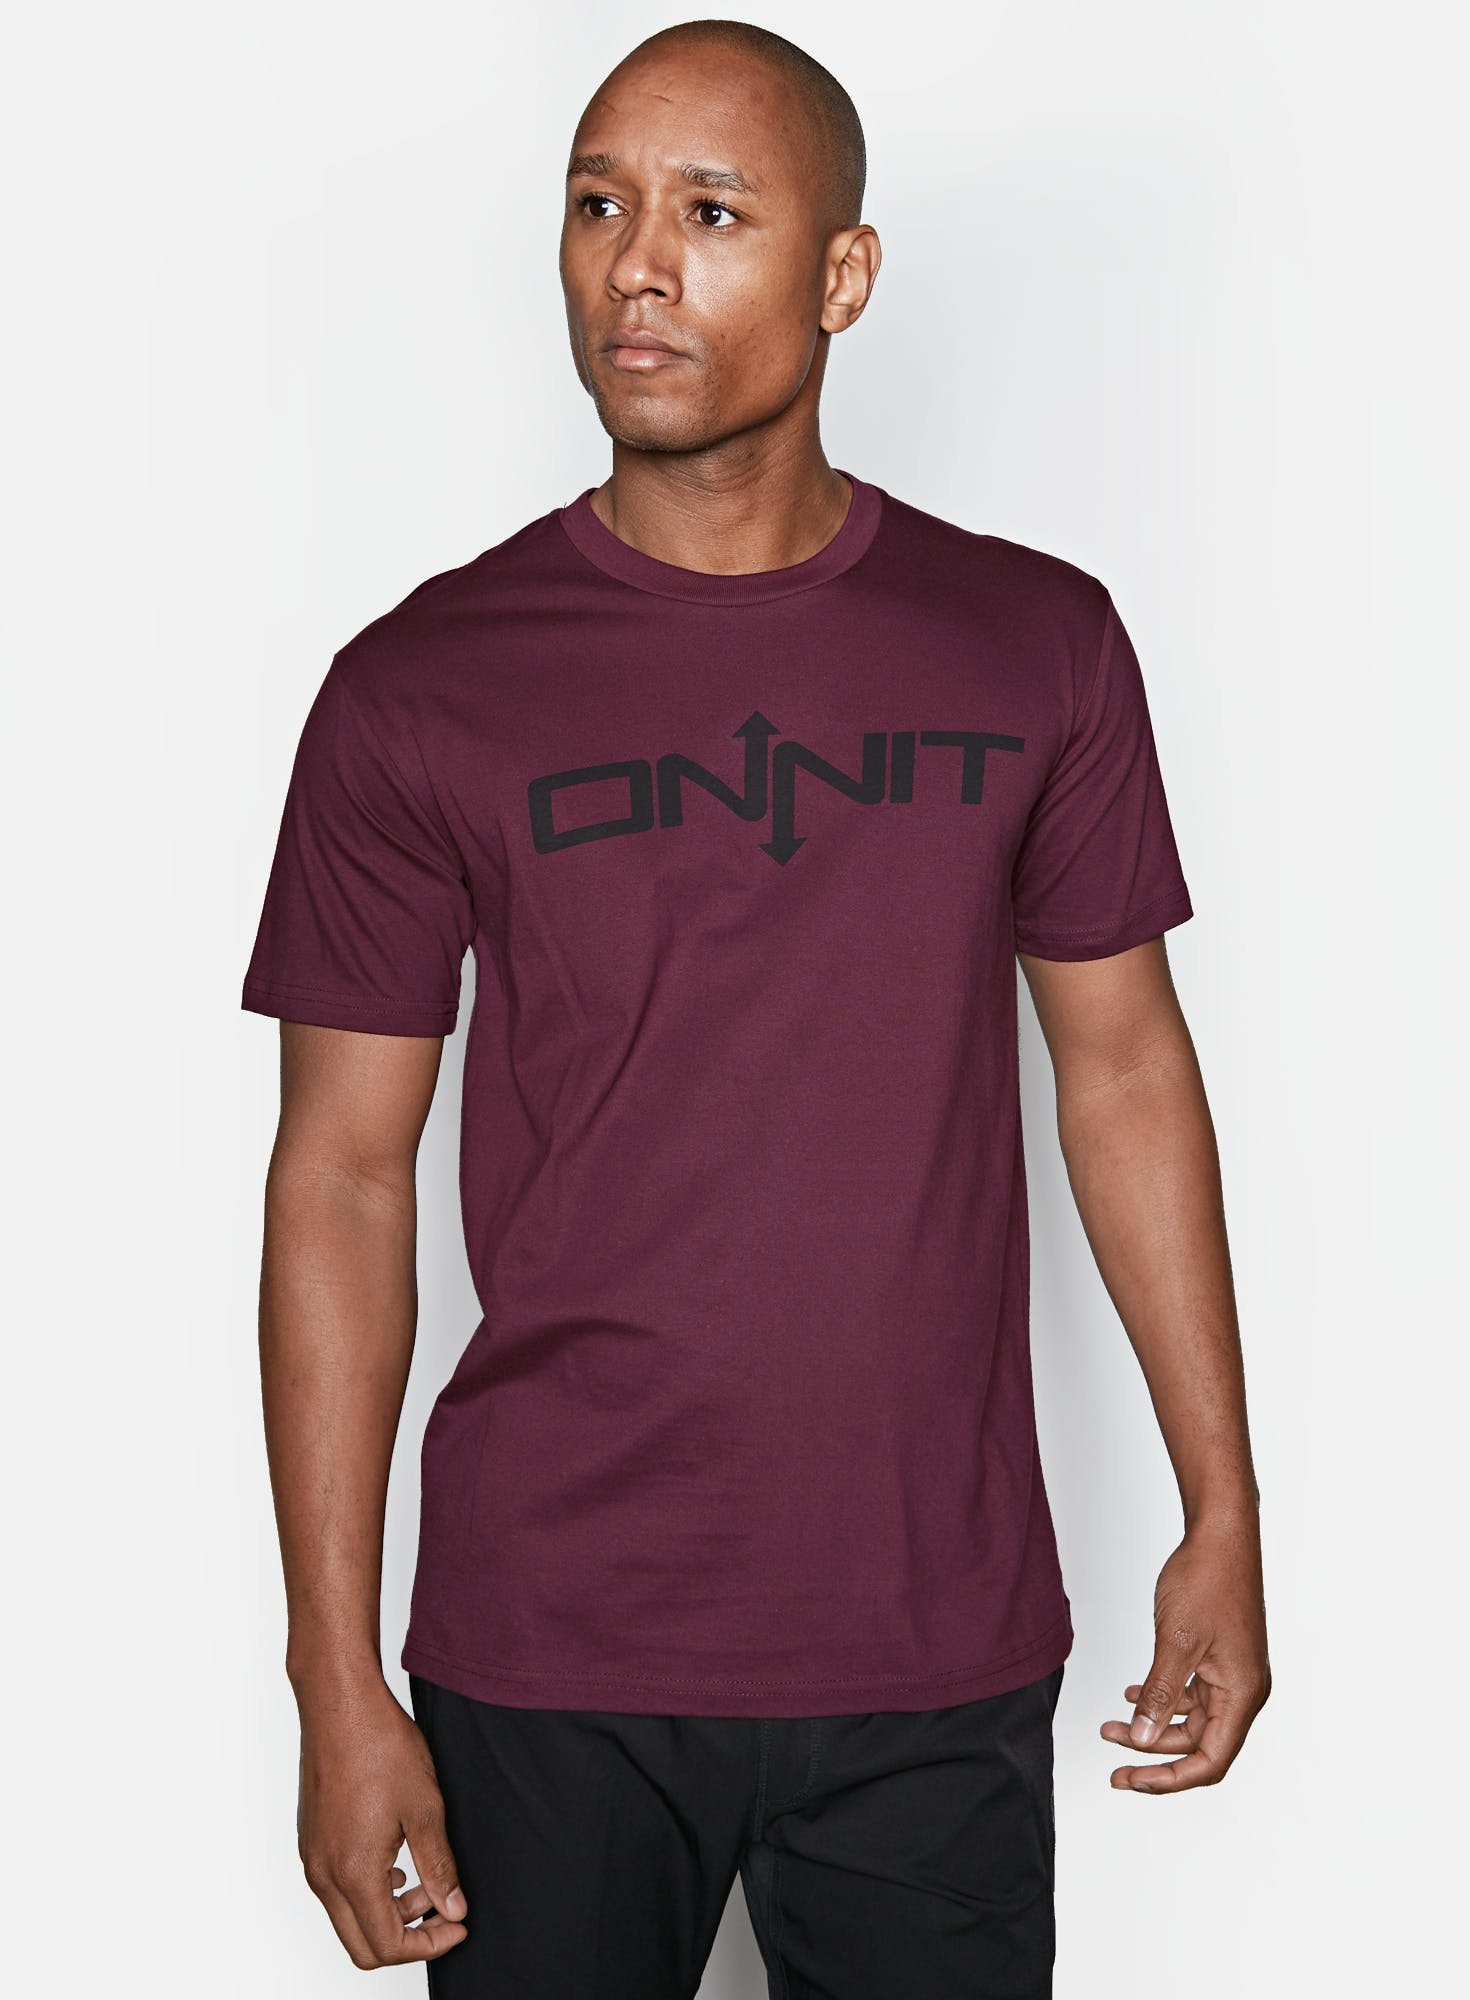 Onnit Type T-Shirt